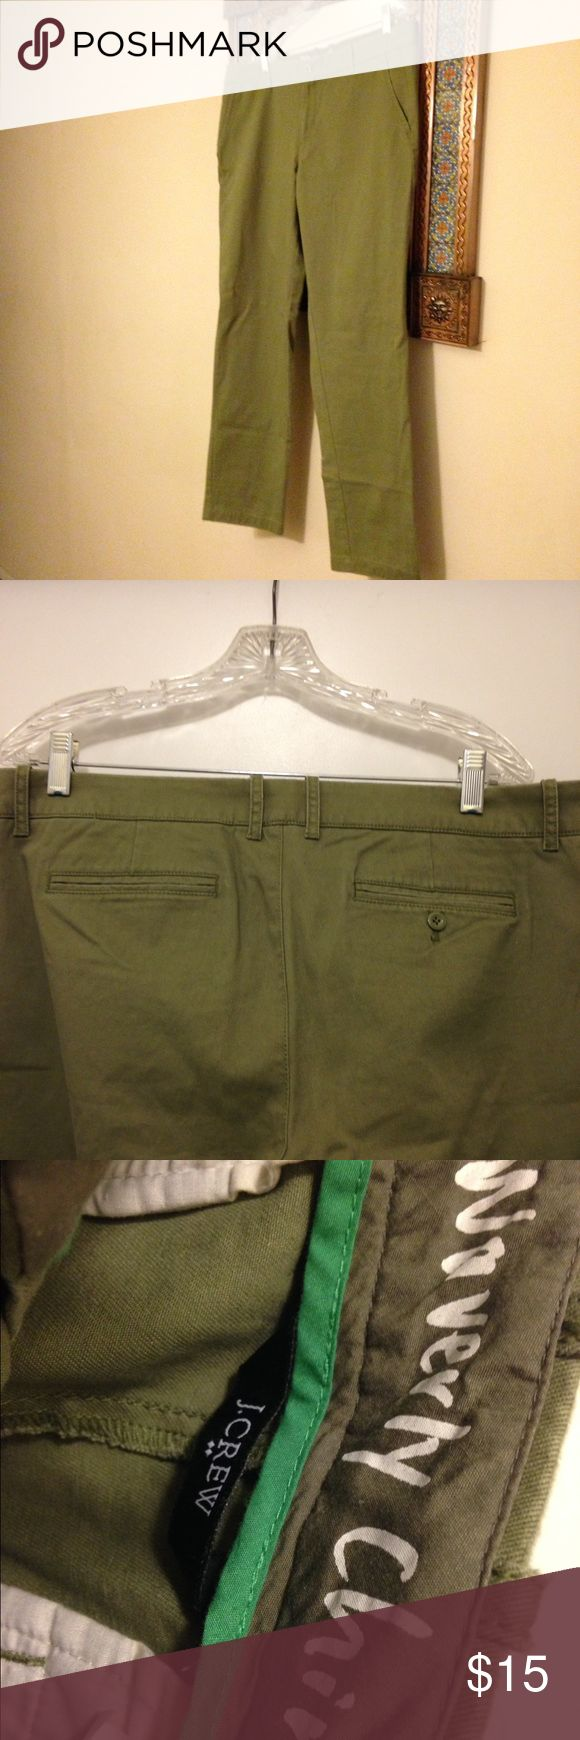 J Crew Factory Chinos Brand new with tags olive green chackis J. Crew Factory Pants Trousers